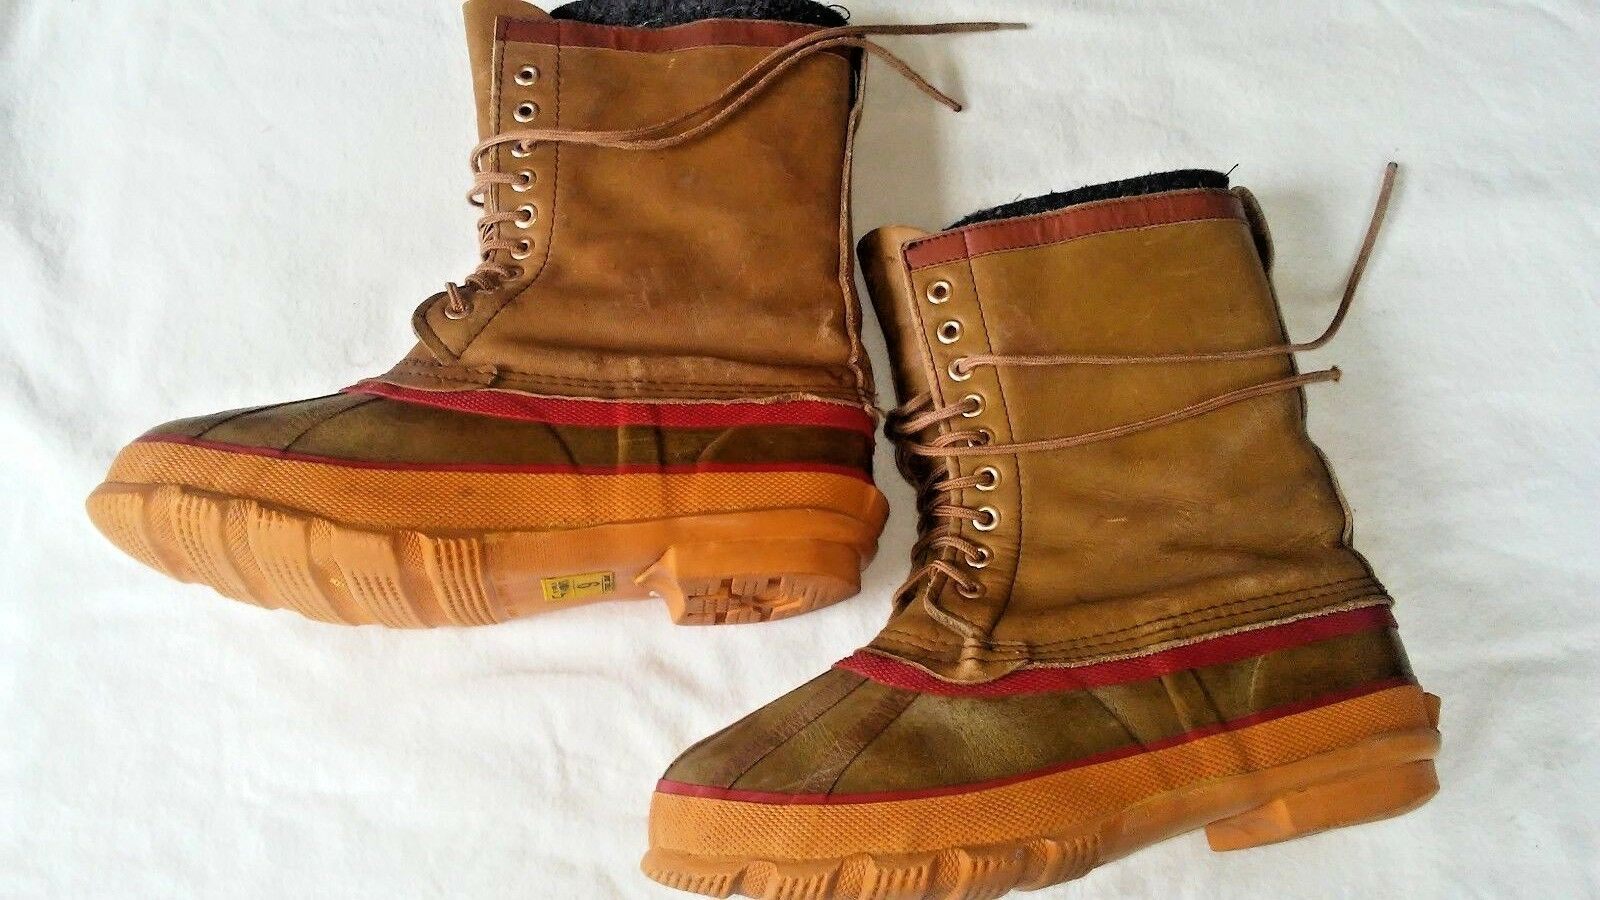 WORLD FAMOUS STEEL SHANK RUBBER  BOOTS WITH REMOVABLE WOOL BOOT LINERS SIZE 9